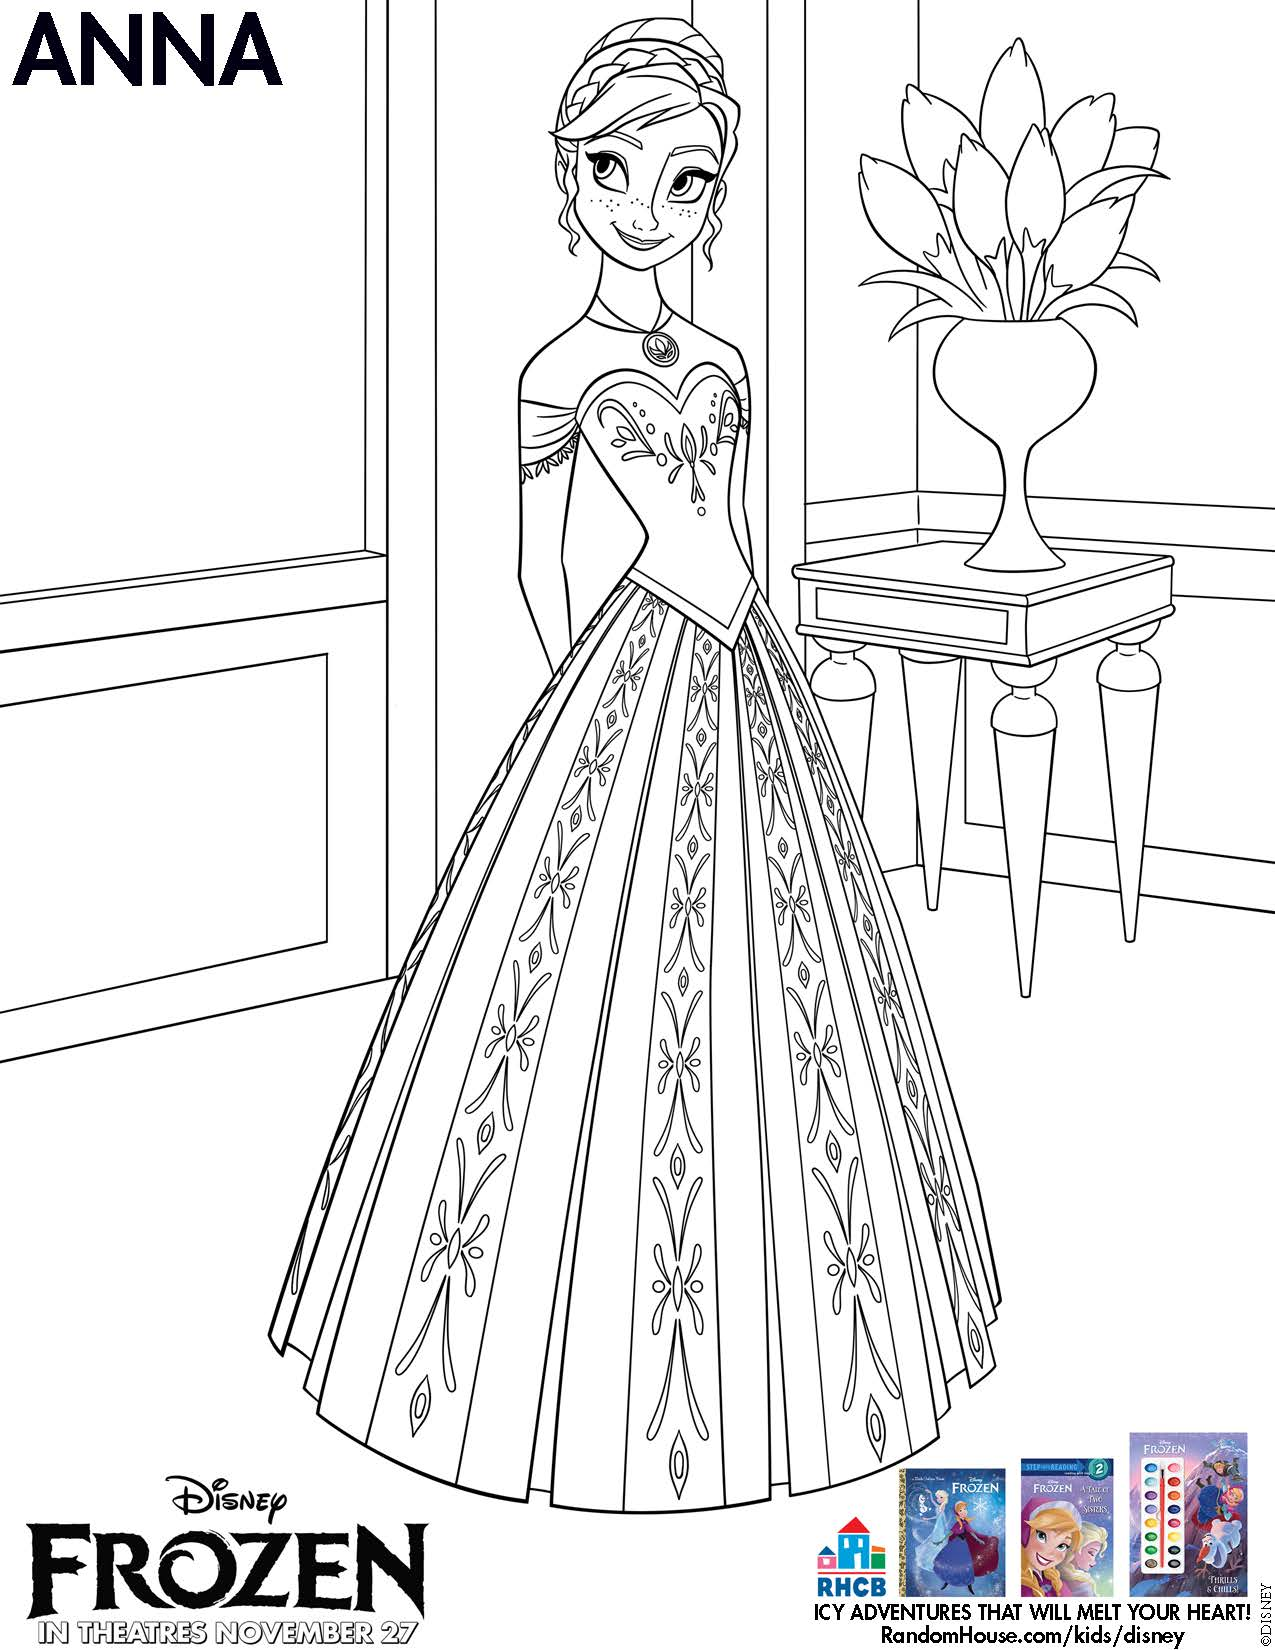 Disney\'s Frozen Printables, Coloring Pages, and Storybook App